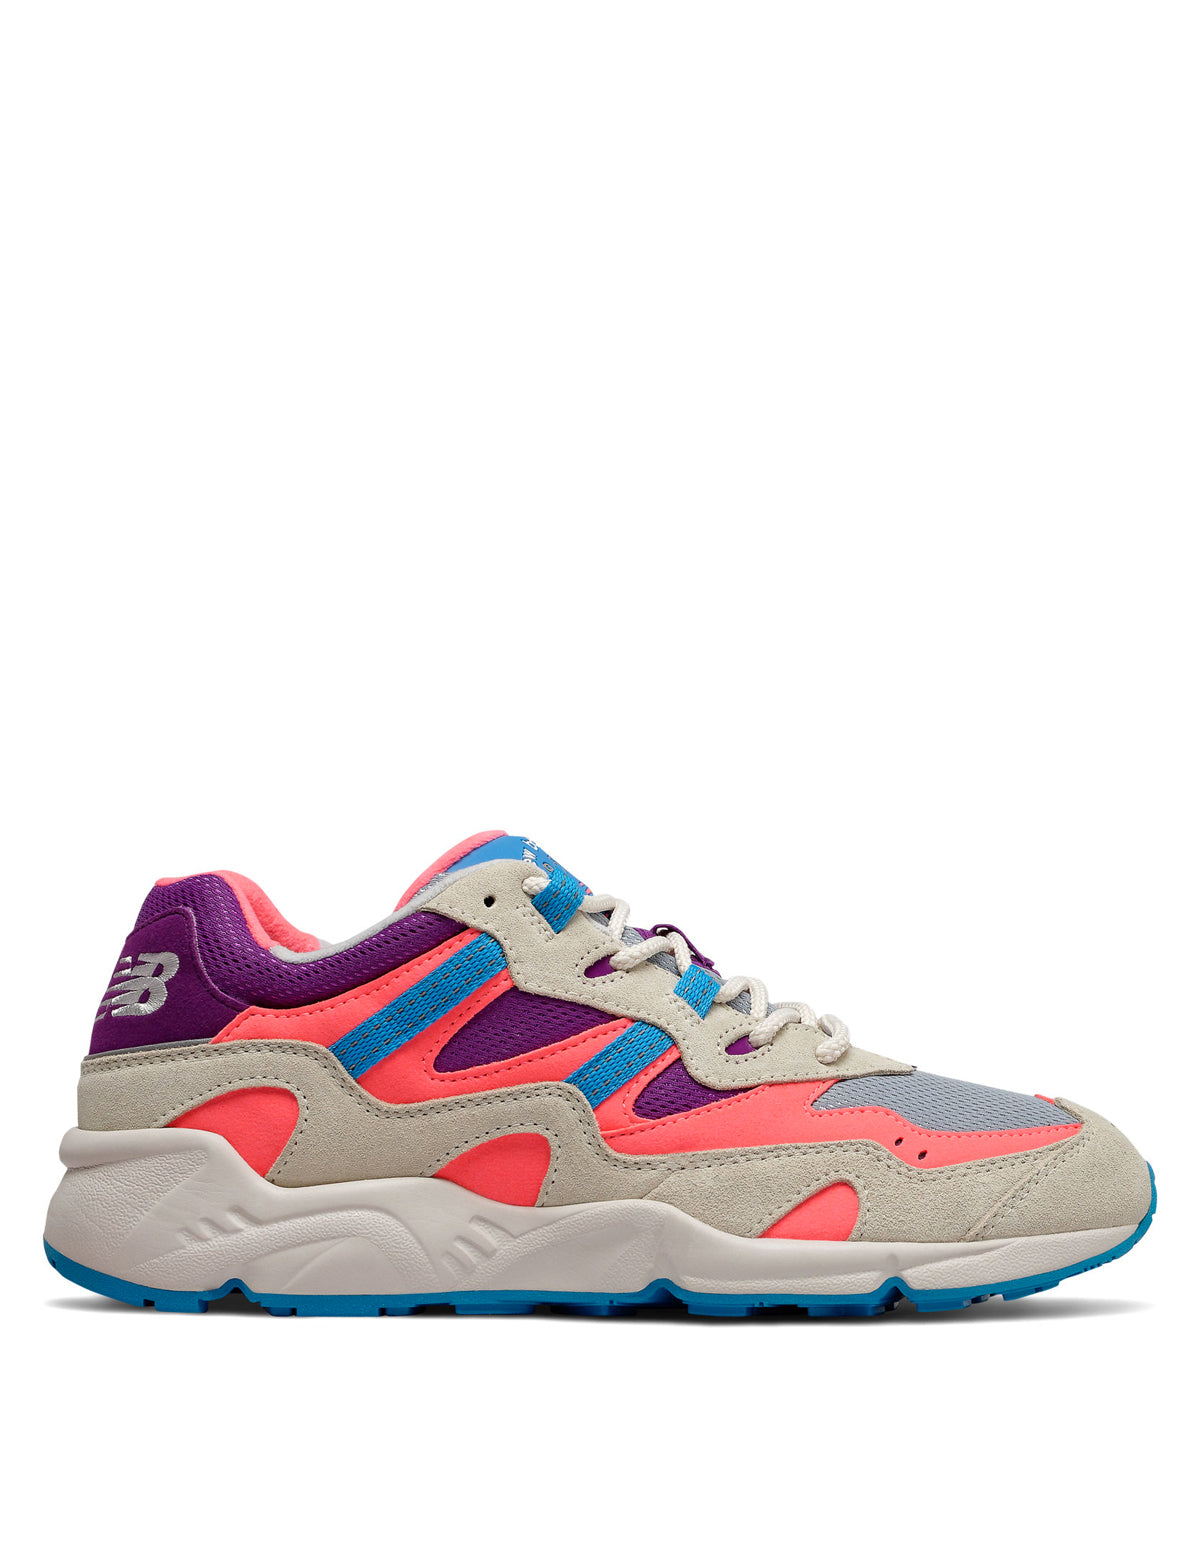 New Balance 850 Sneaker, Coral Purple Electric Blue